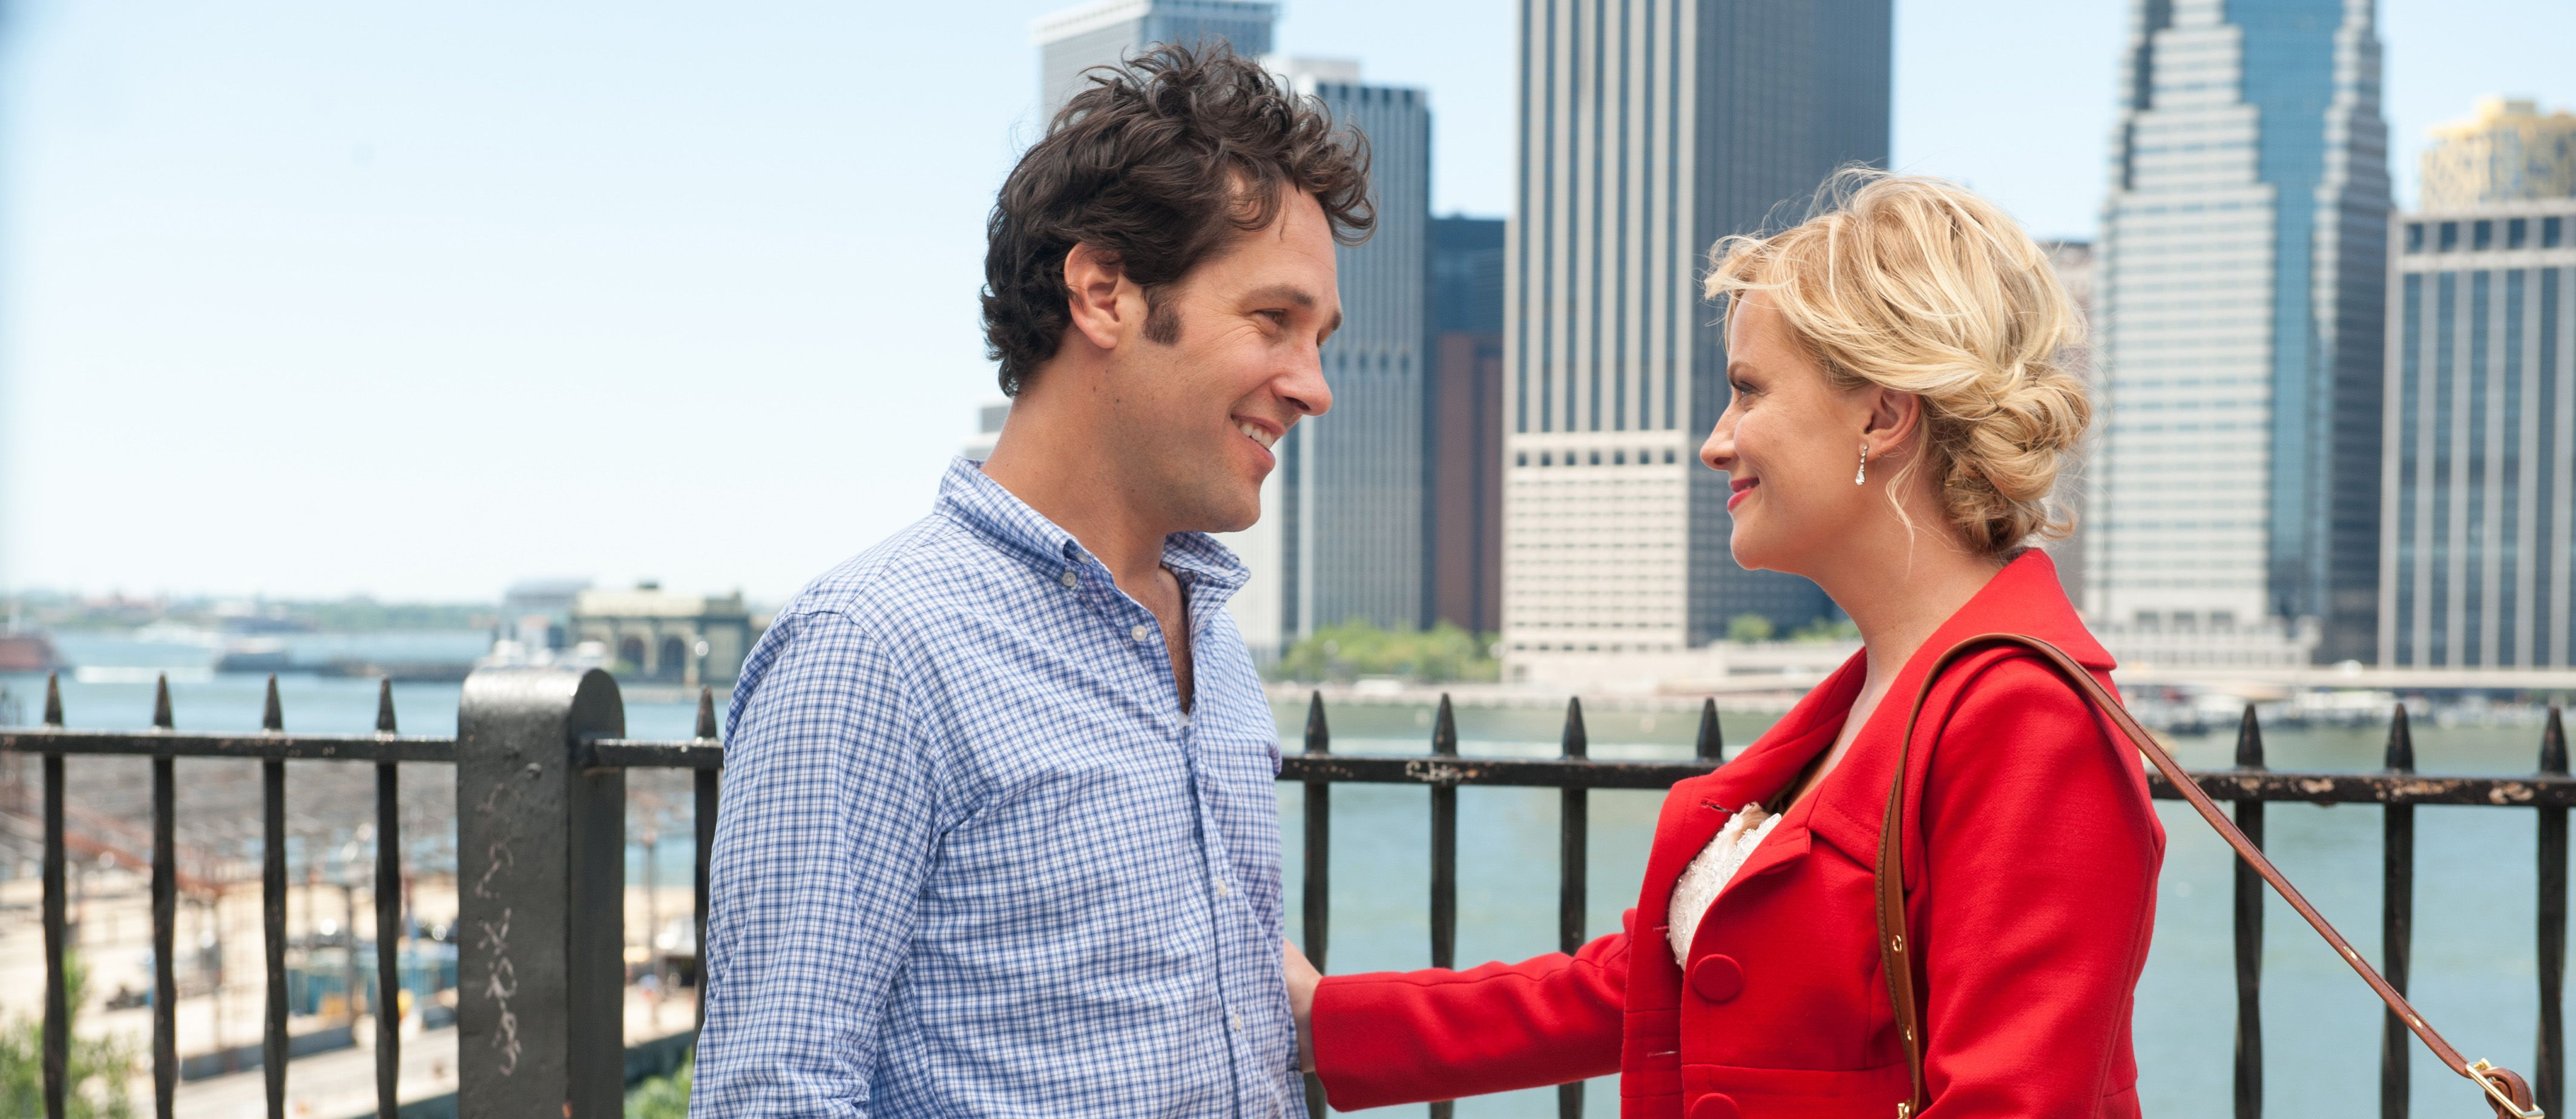 An image from They Came Together